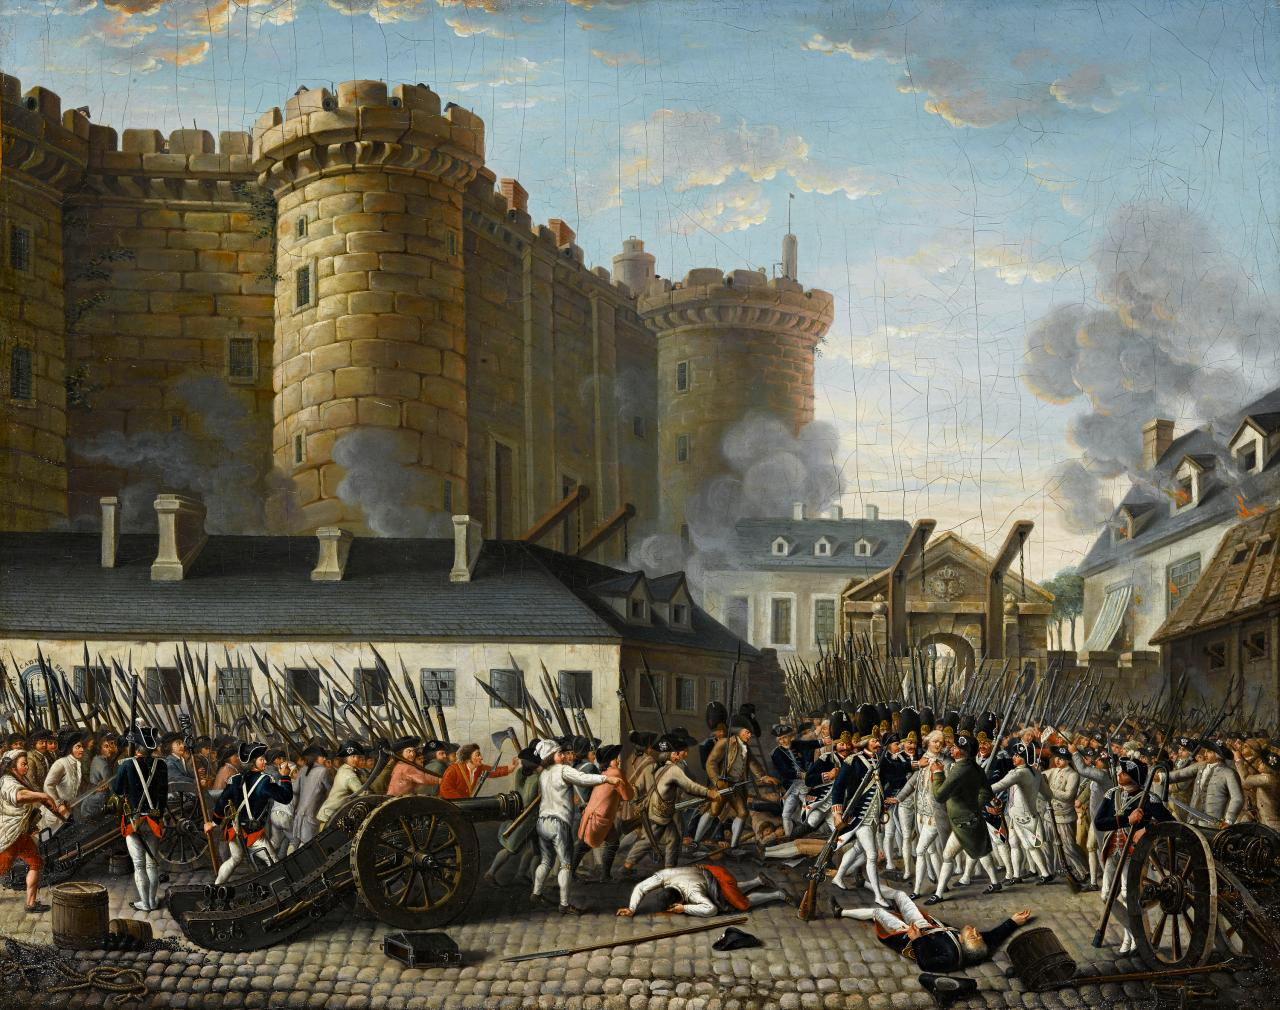 the historical importance of the storming of the bastille in france Bastille day marks the storming of the bastille prison on july 14, 1789, by angry parisian crowds this seismic act demonstrated that ordinary people would no longer accept the absolute power of.